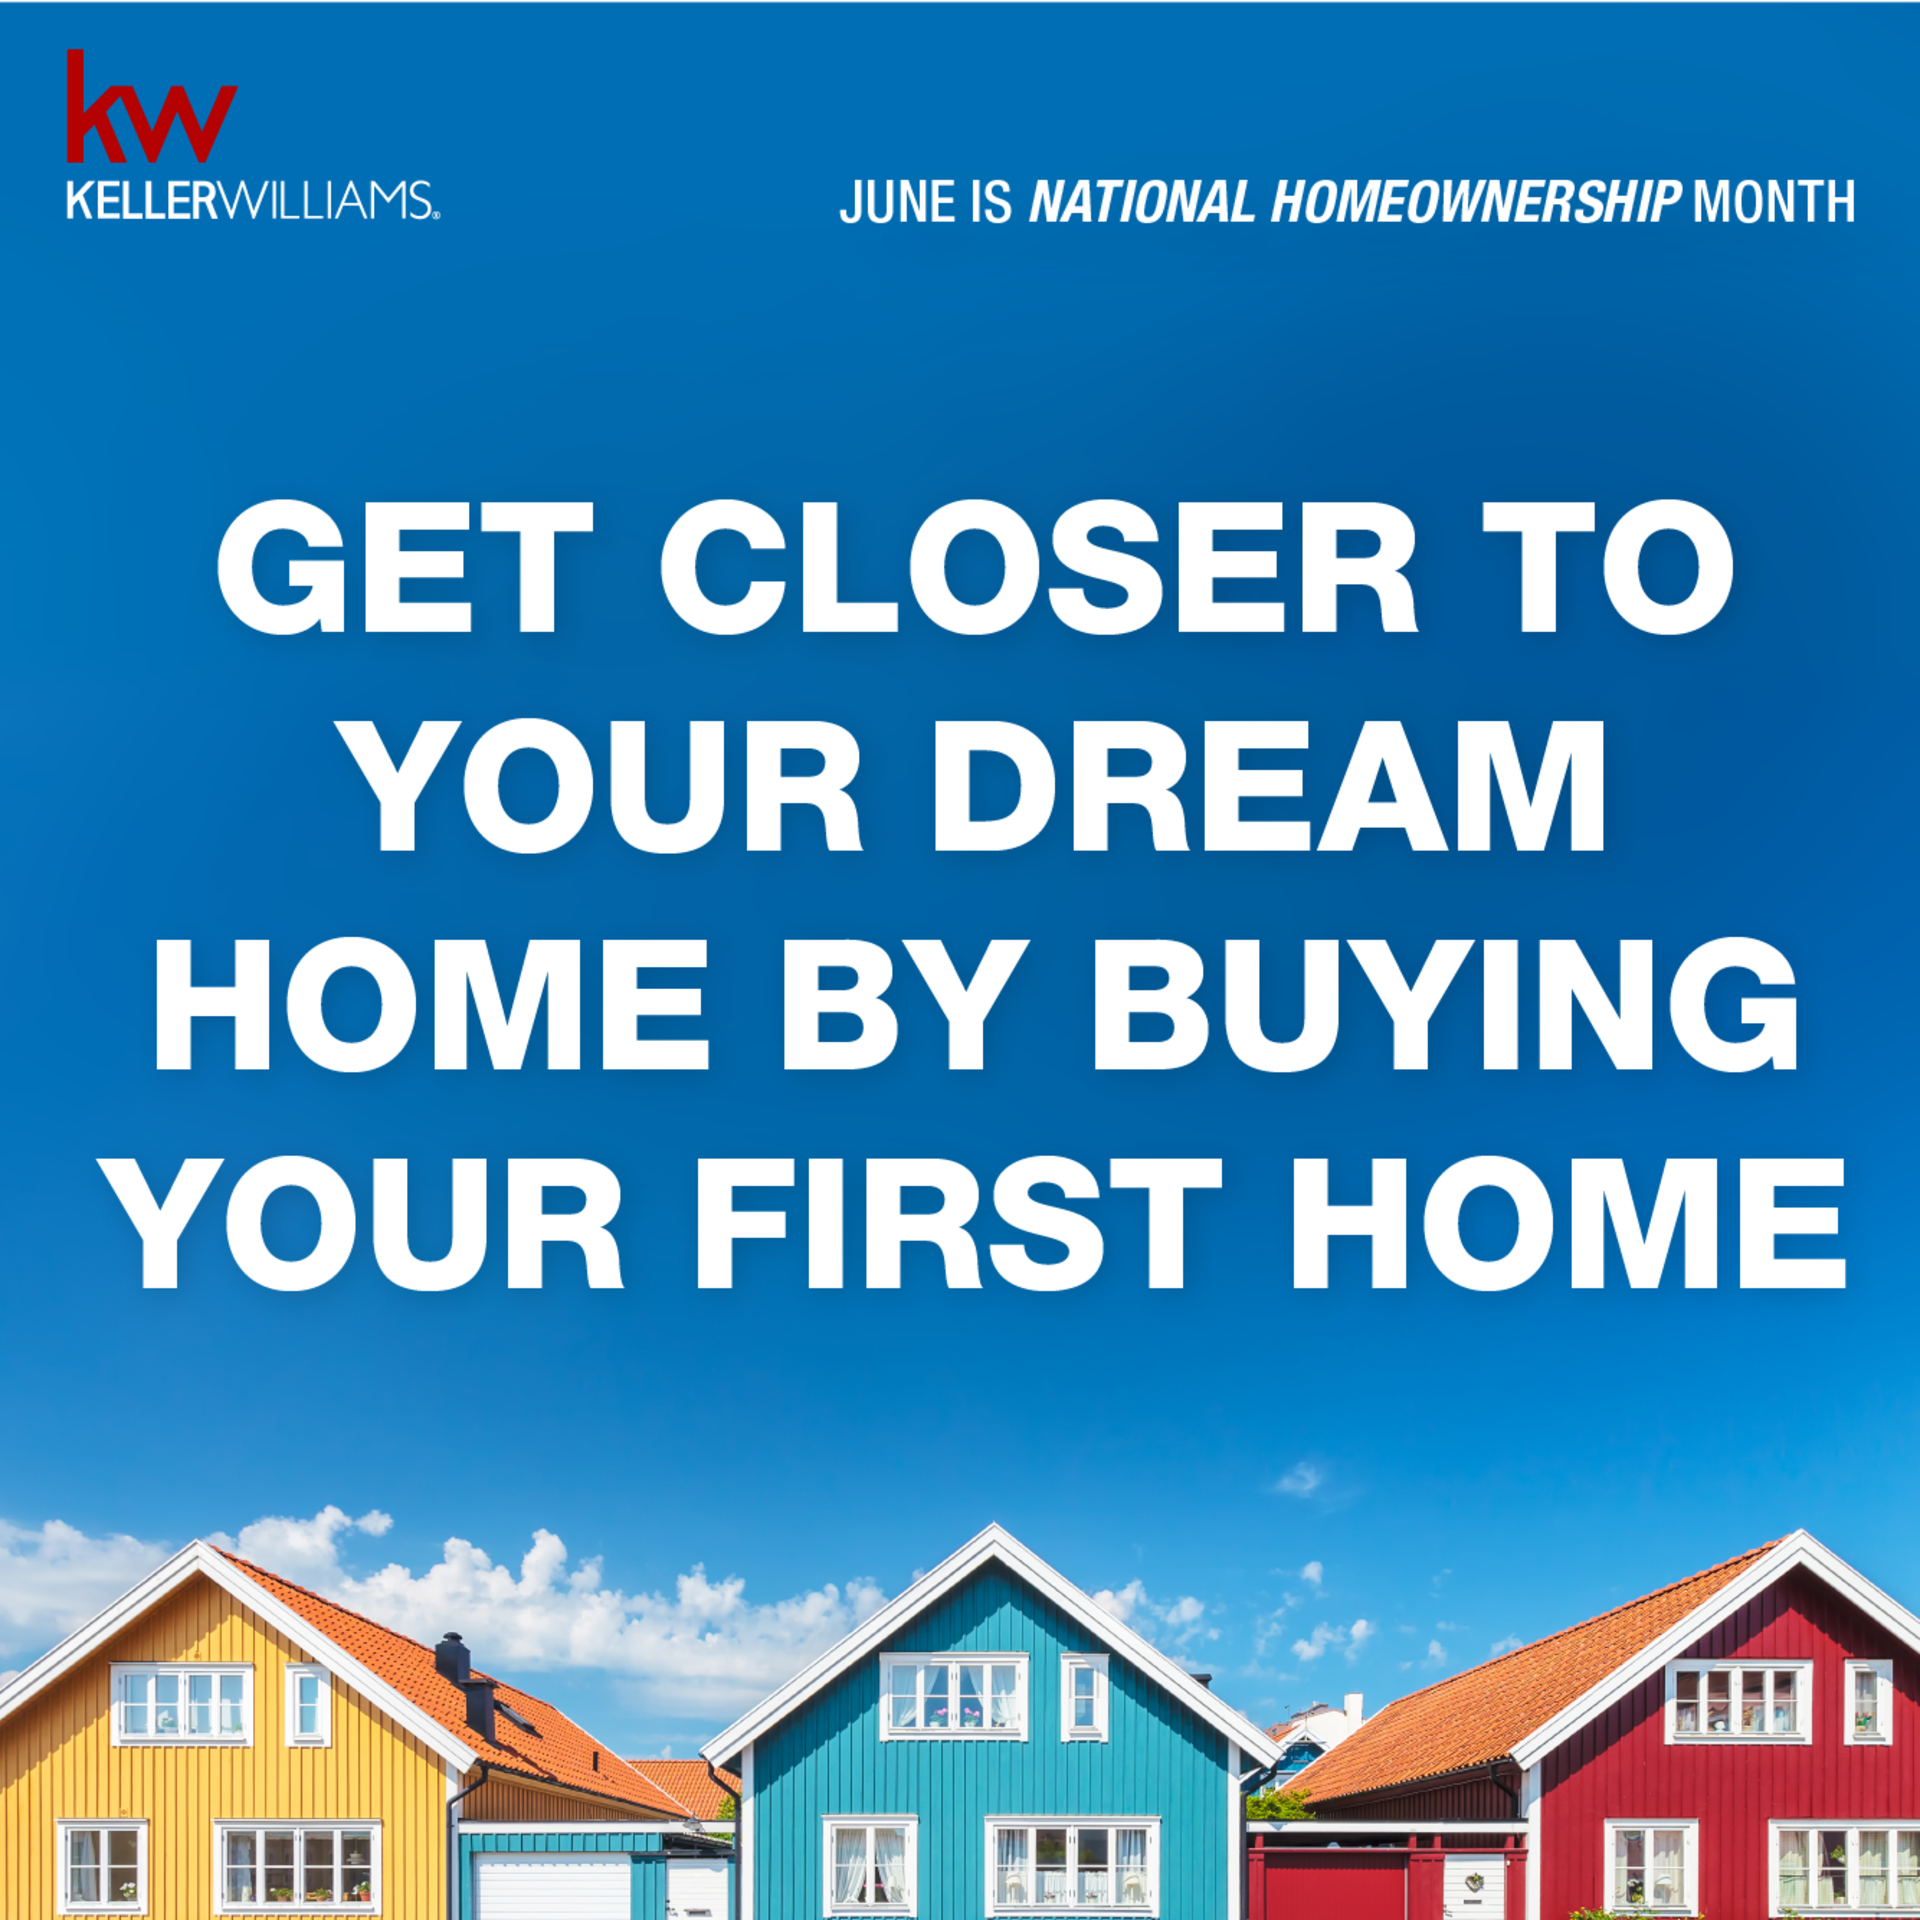 Homeownership Month: Replace your FEARS with FACTS!